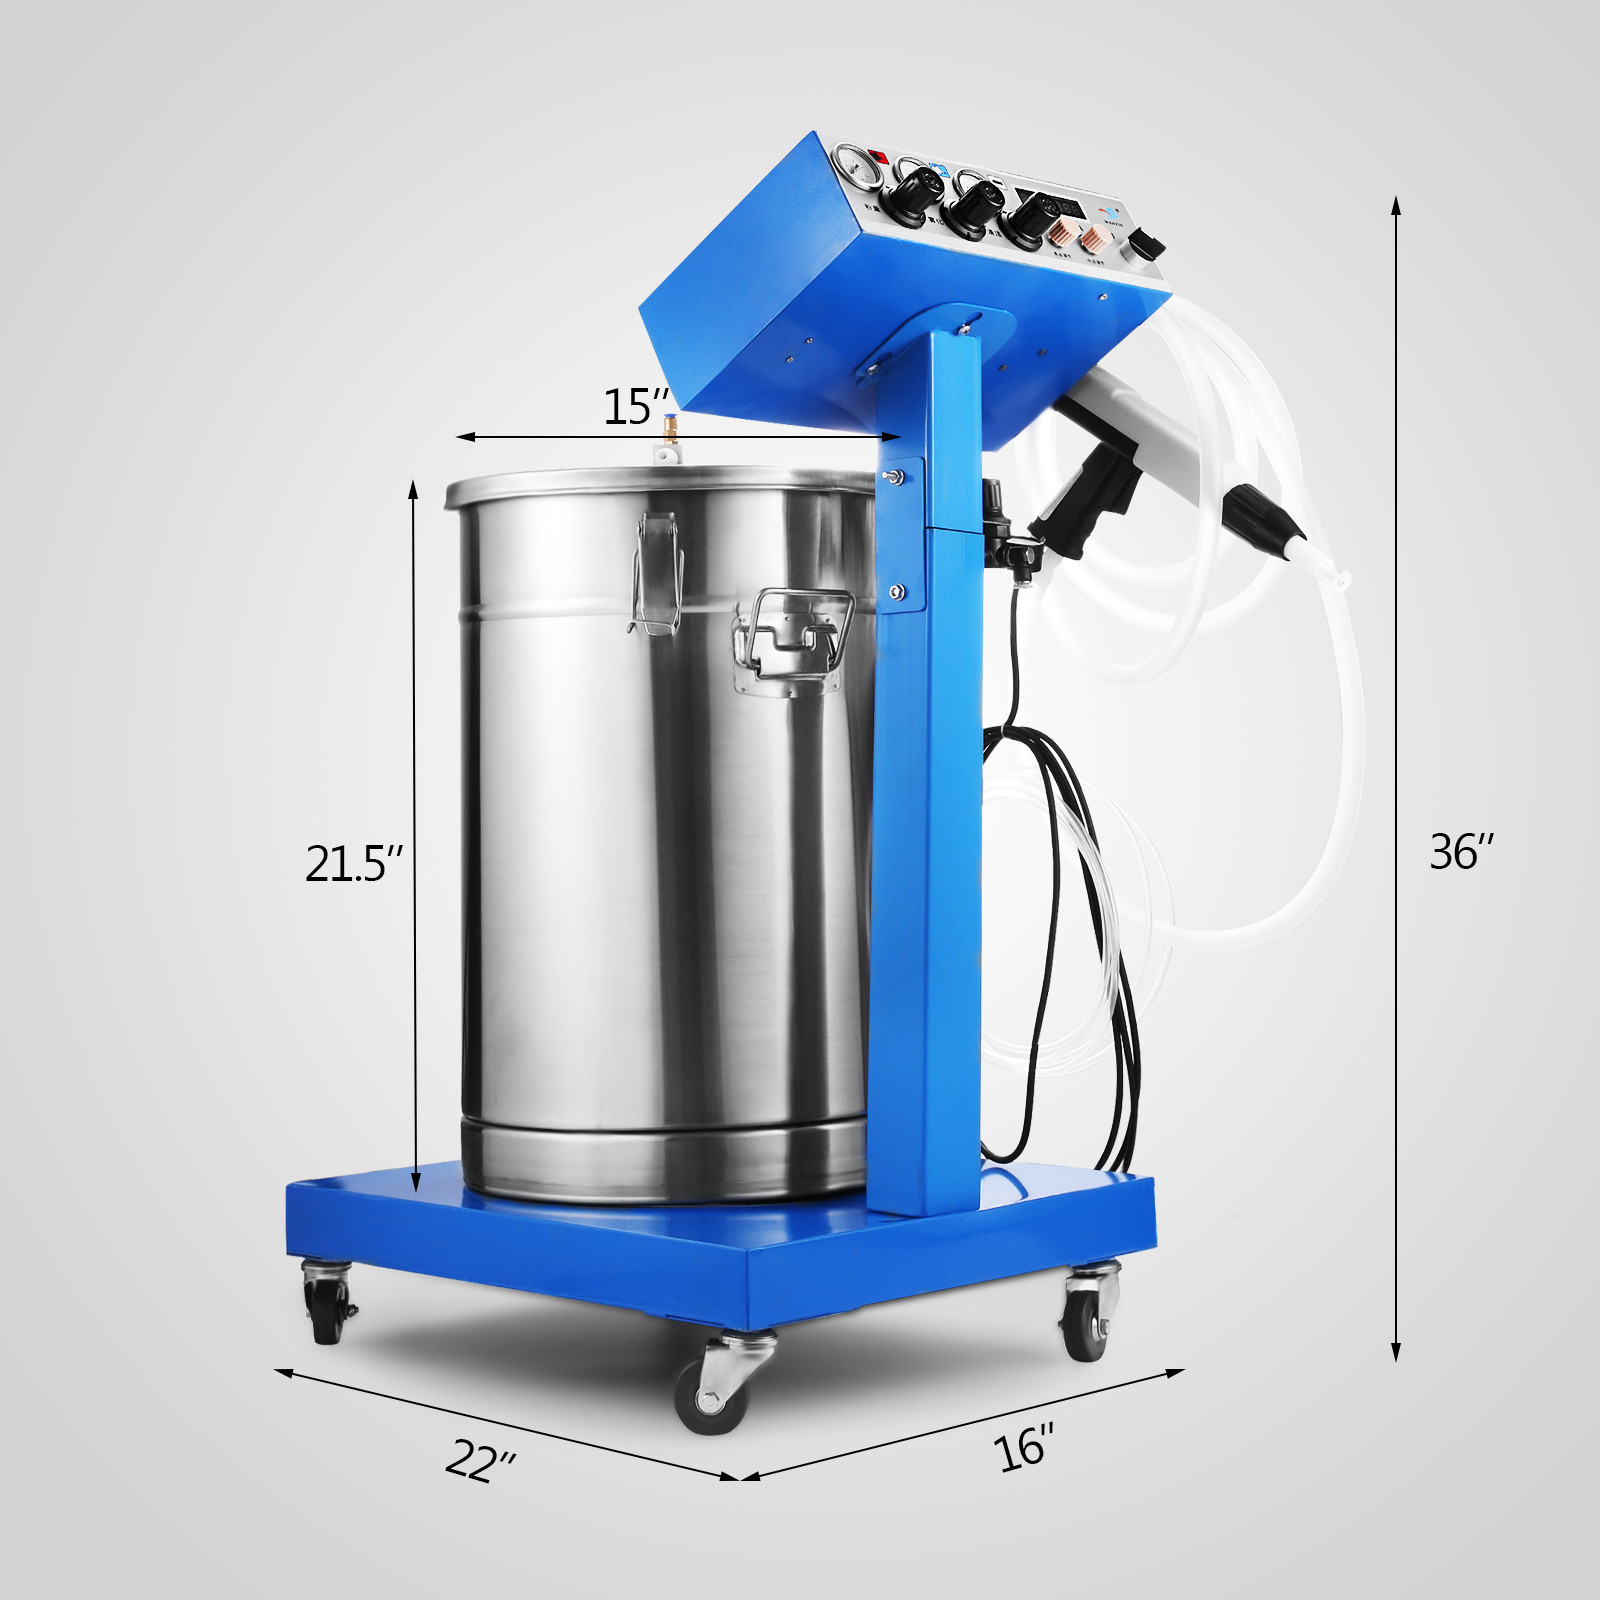 Wx 958 Powder Coating System Machine Professional